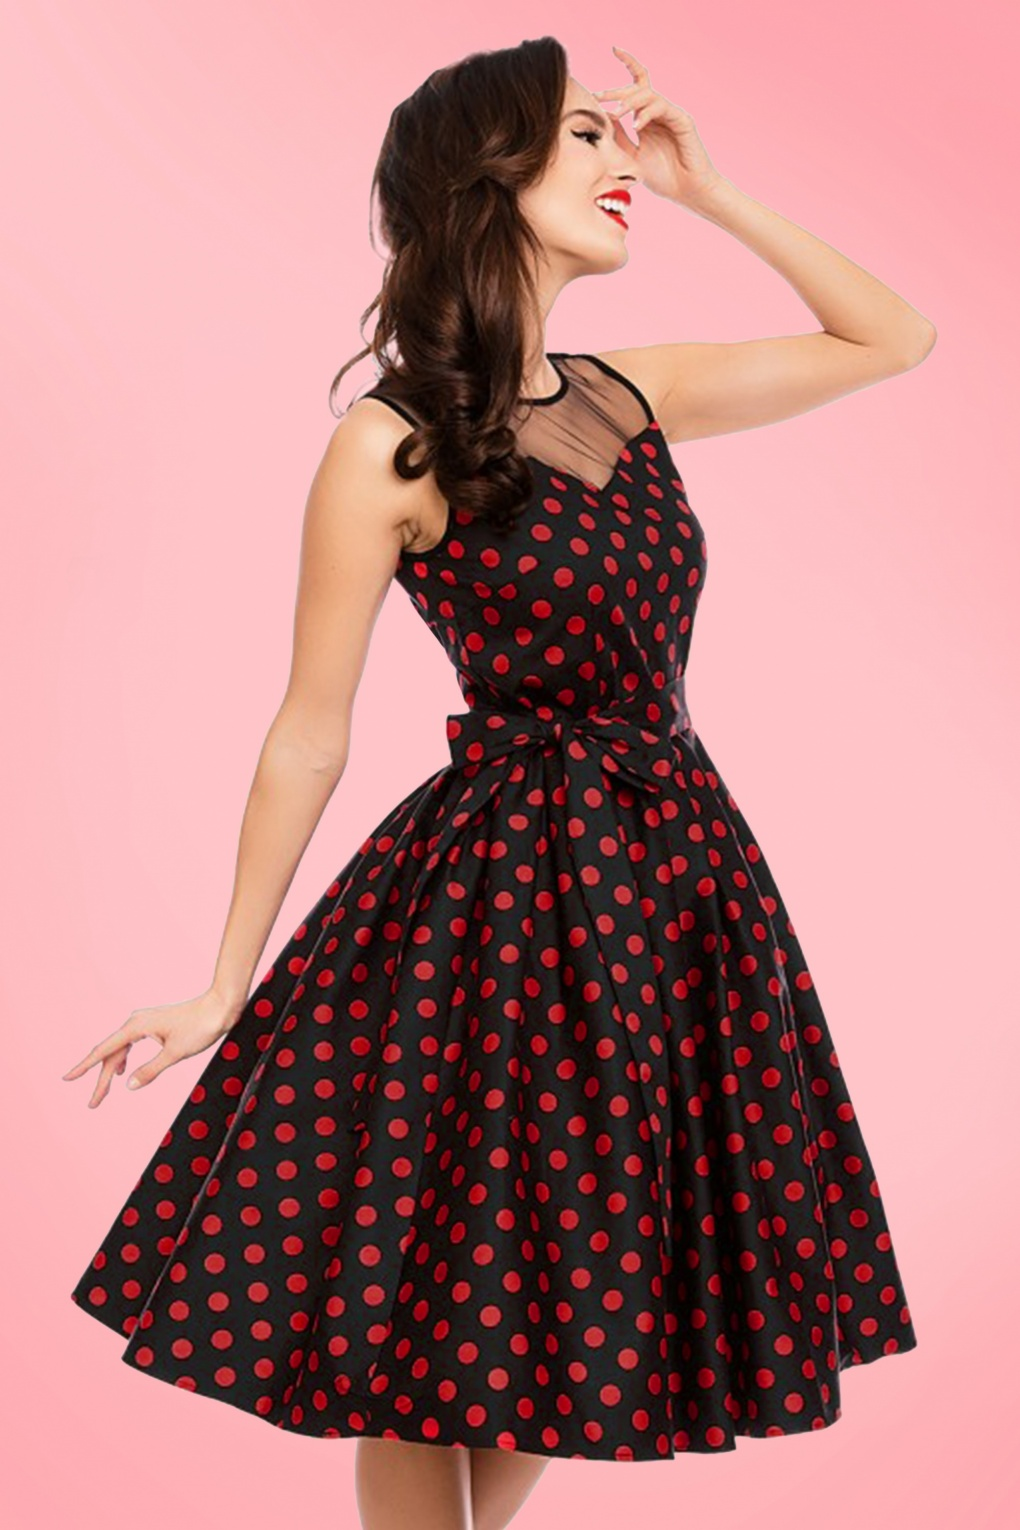 Vintage Inspired Clothing Stores 50s Elizabeth Polkadot Swing Dress in Black and Red £39.31 AT vintagedancer.com